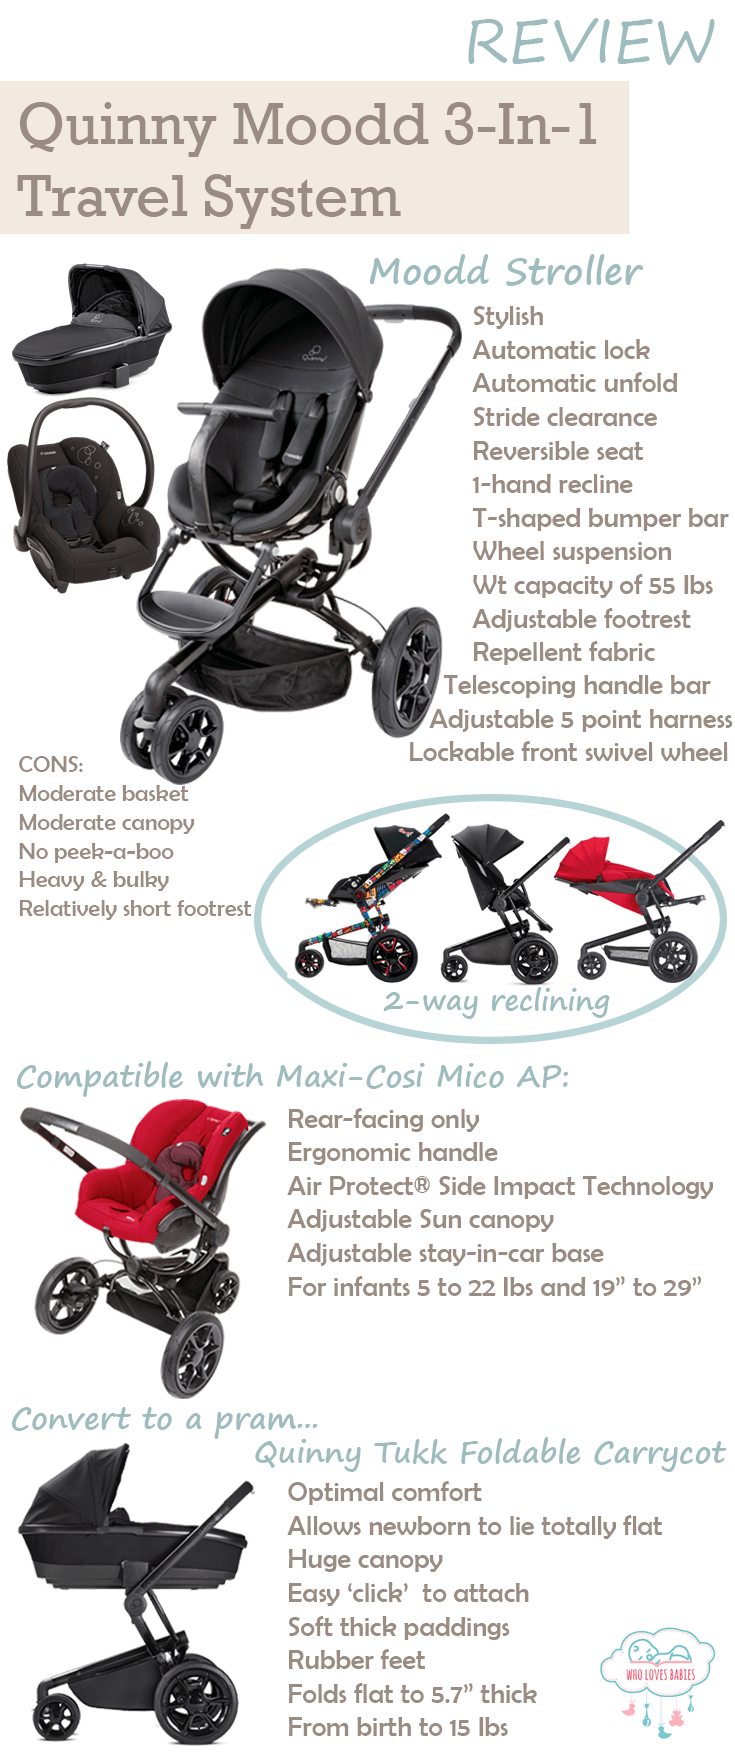 Quinny Moodd Travel System Review Summary